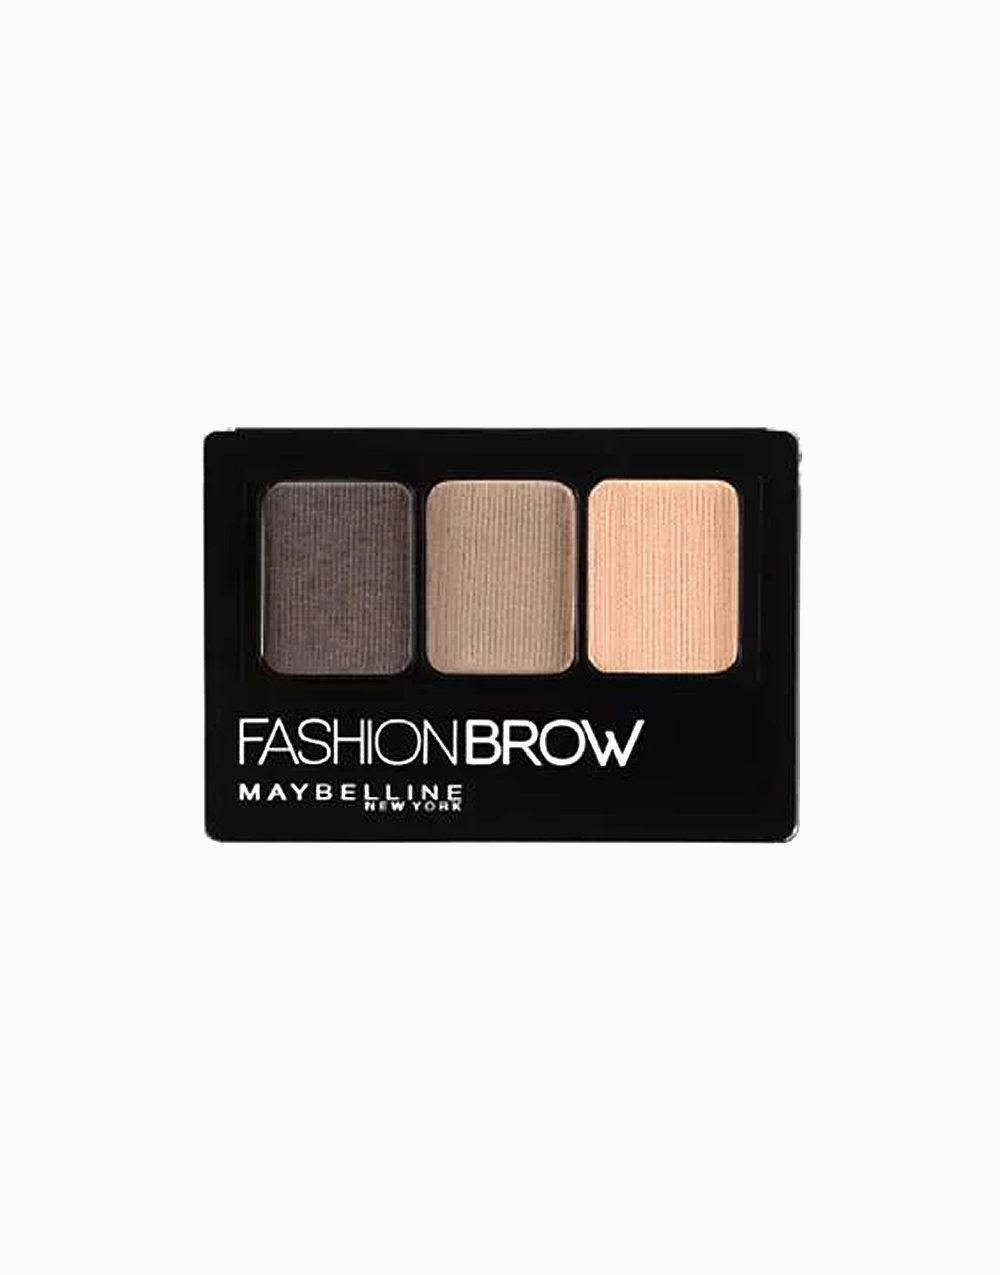 Fashion Brow 3D Palette by Maybelline | Light Brown